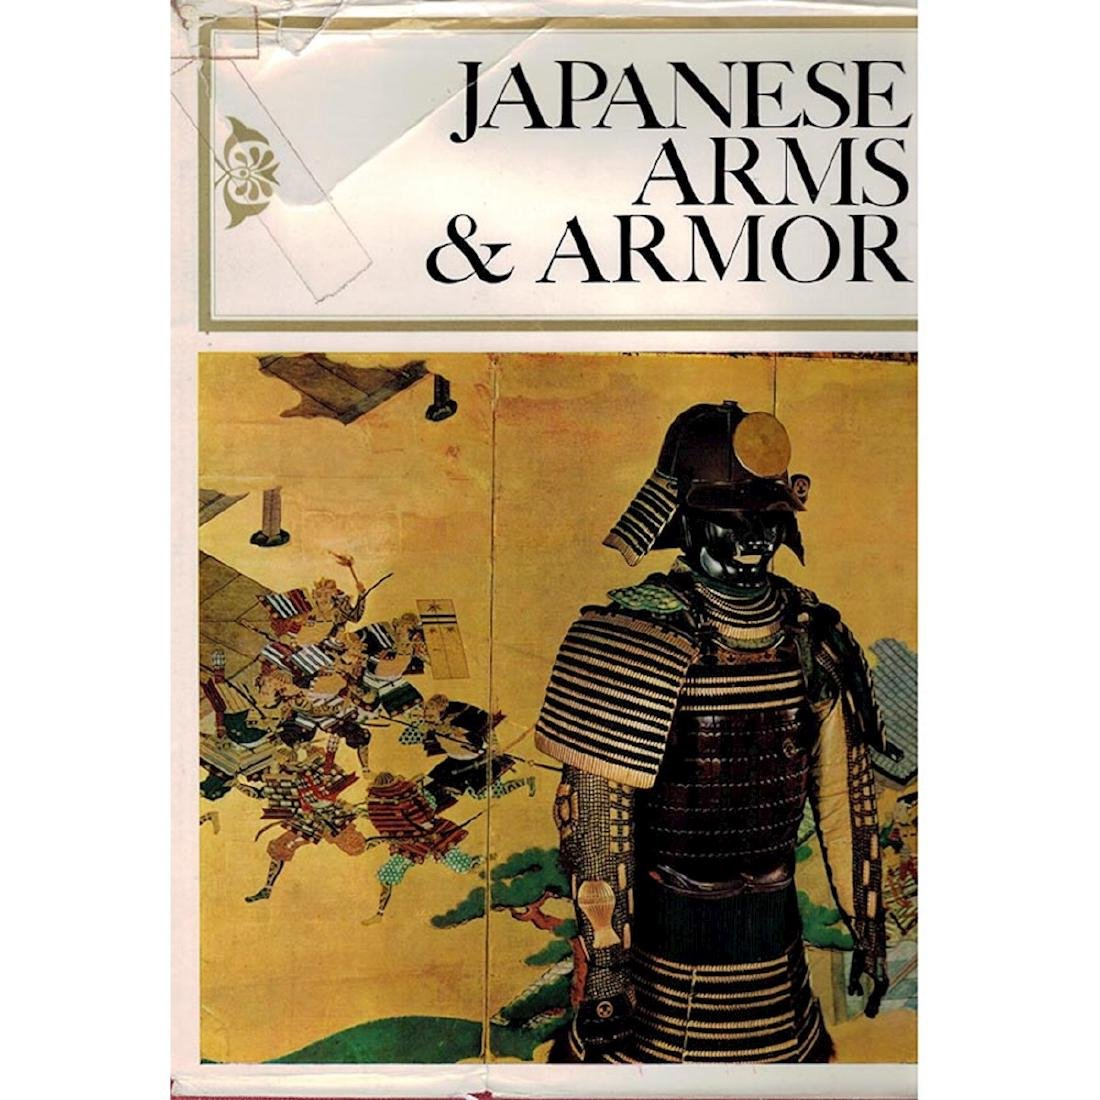 SET OF TWO BOOKS ON JAPANESE ARMS